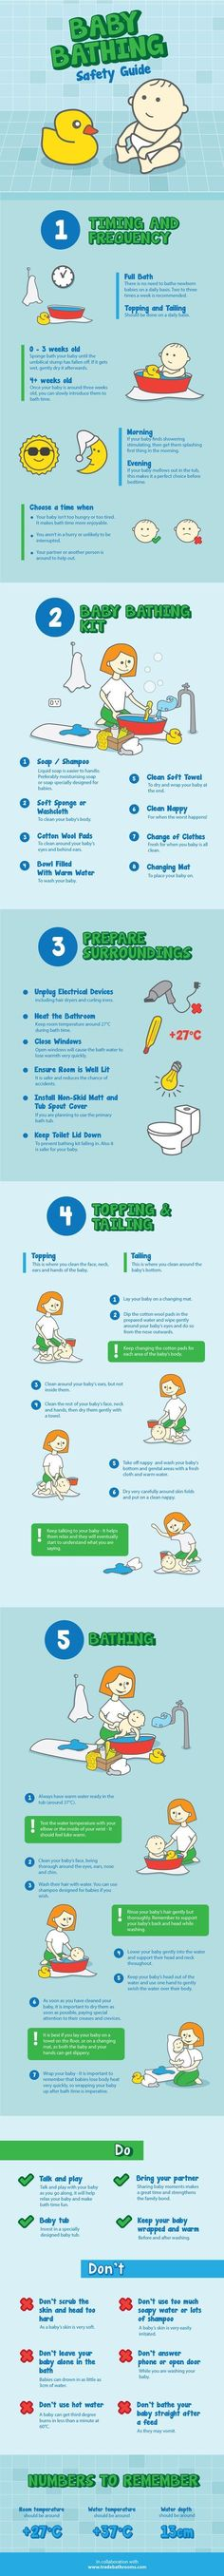 Infographic: Baby Bathing Safety Guide This infographic is a fantastic resource for all parents on baby bath time. There are some important things to bear in mind to make sure your baby is safe at all times. Trade Bathrooms has put together this guide. Great print out for the bathroom as a reminder before each bath. #Babybathtime